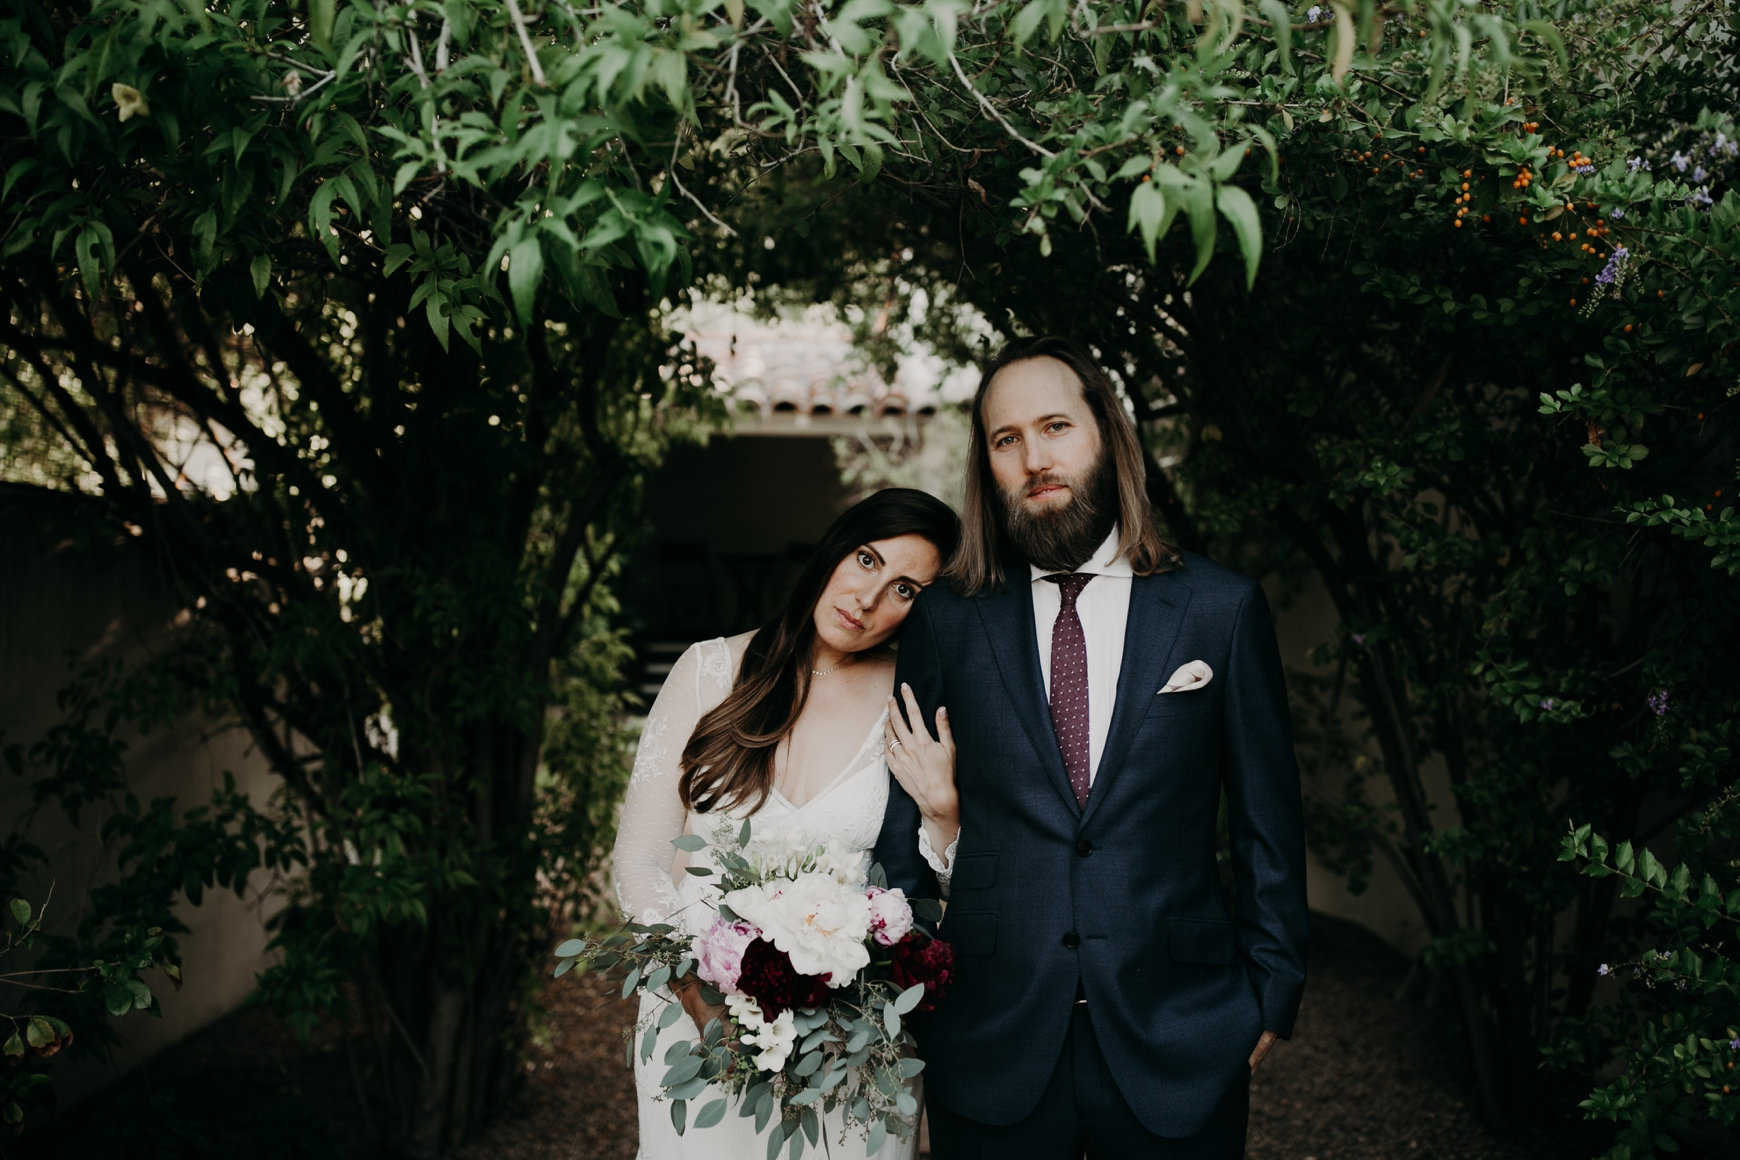 The Colony Palms Hotel Palm Springs Wedding Jaclyn & Tyson Emily Magers Photography-340.jpg